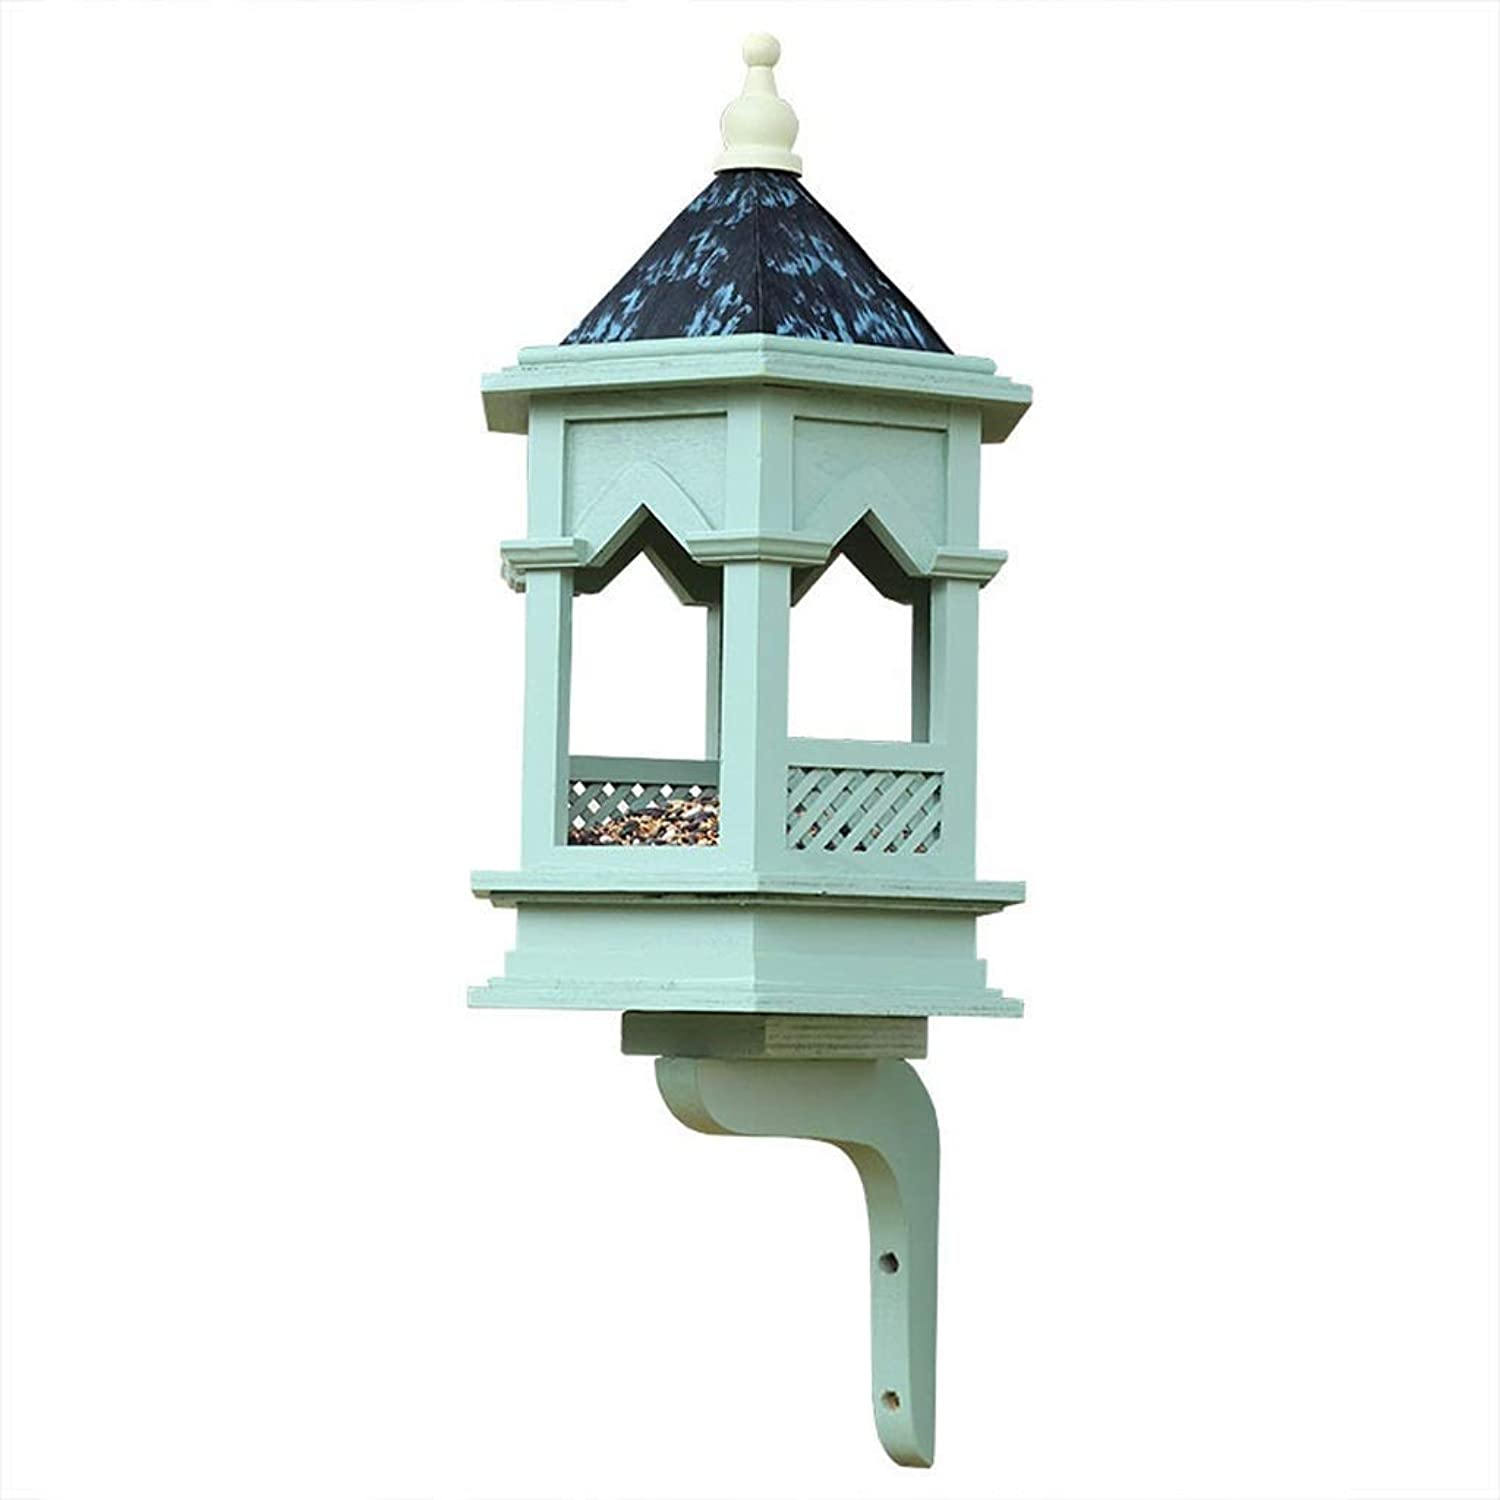 Feeder Bird Feeding Station Classical Gothic Bird, Bird Pavilion Rain Feeding Table Landscape Gardening